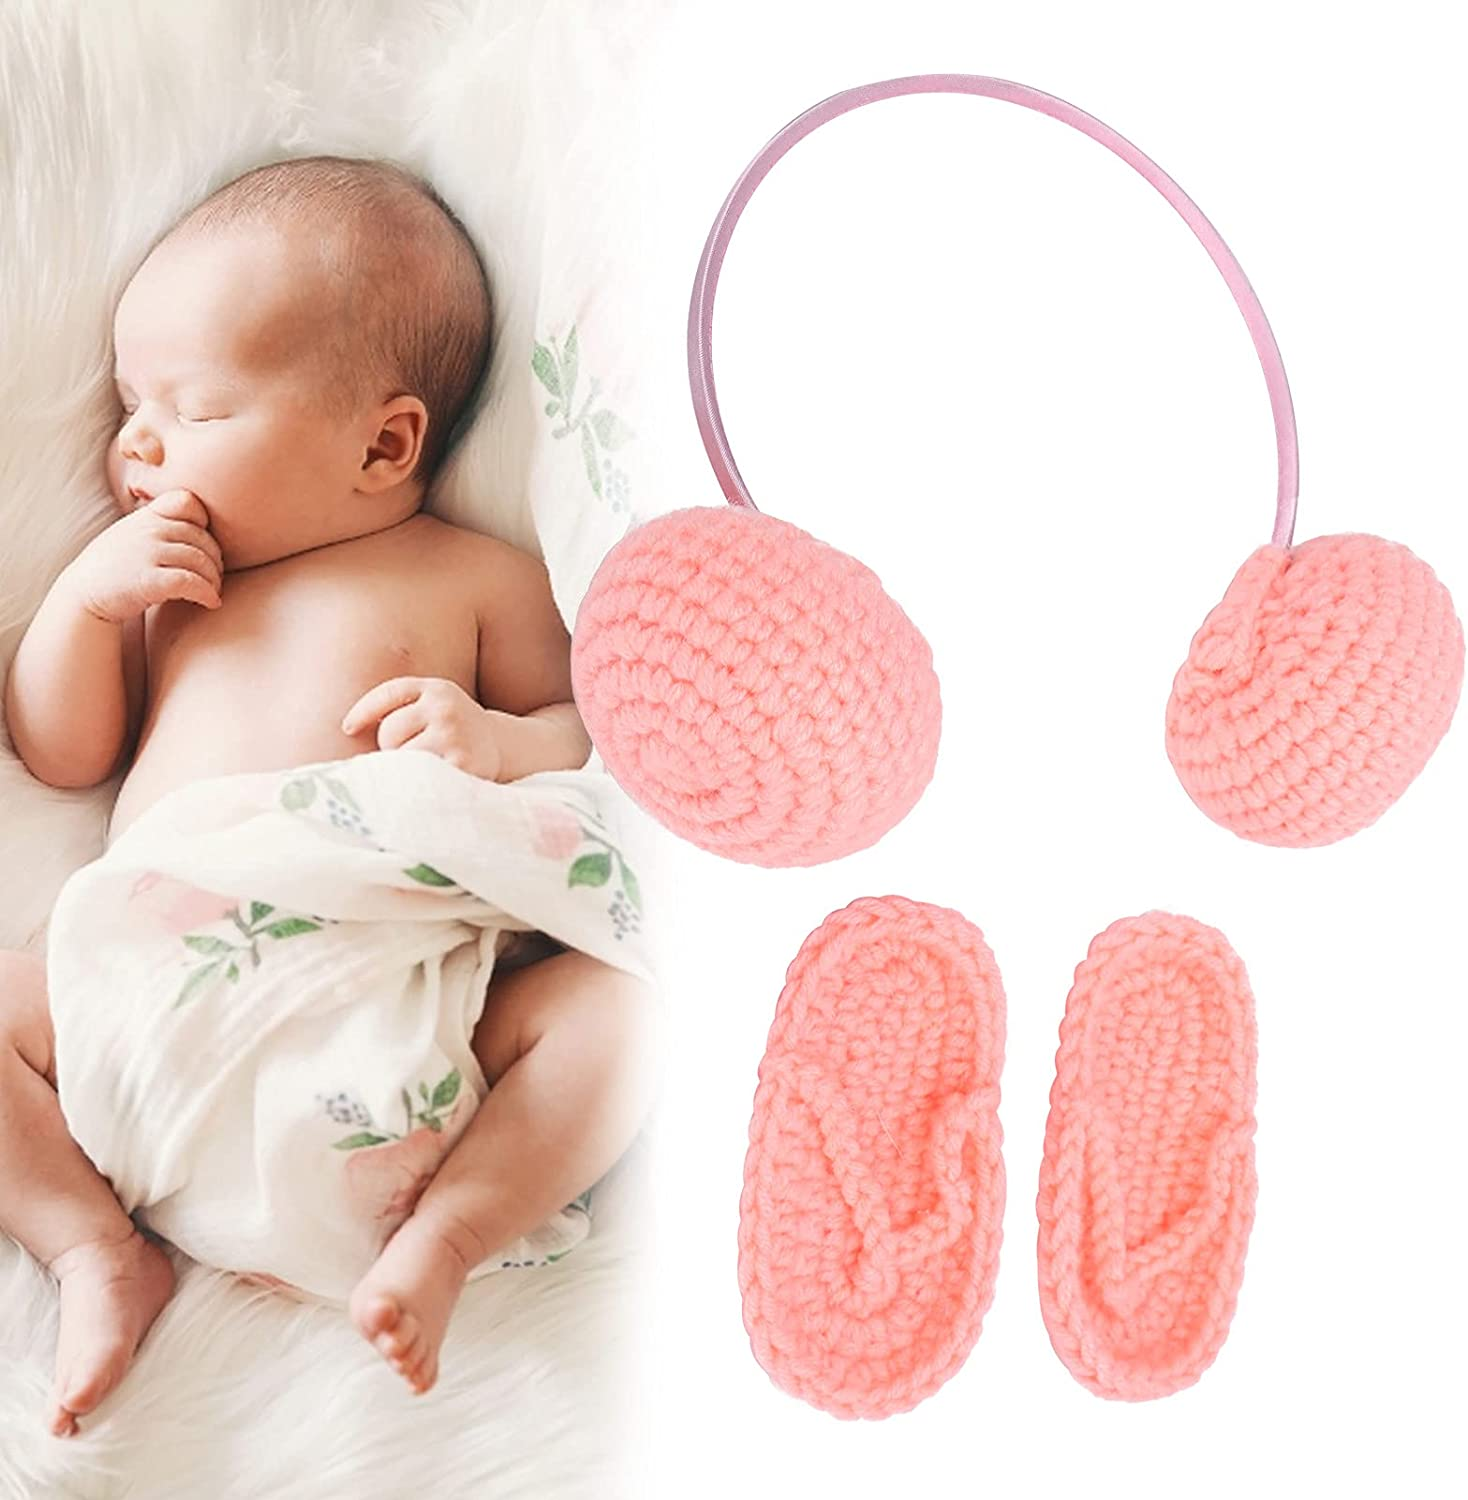 Gaeirt Super sale period limited Photography Baby 100% quality warranty Blankets Comfortable Props Cute Fabric